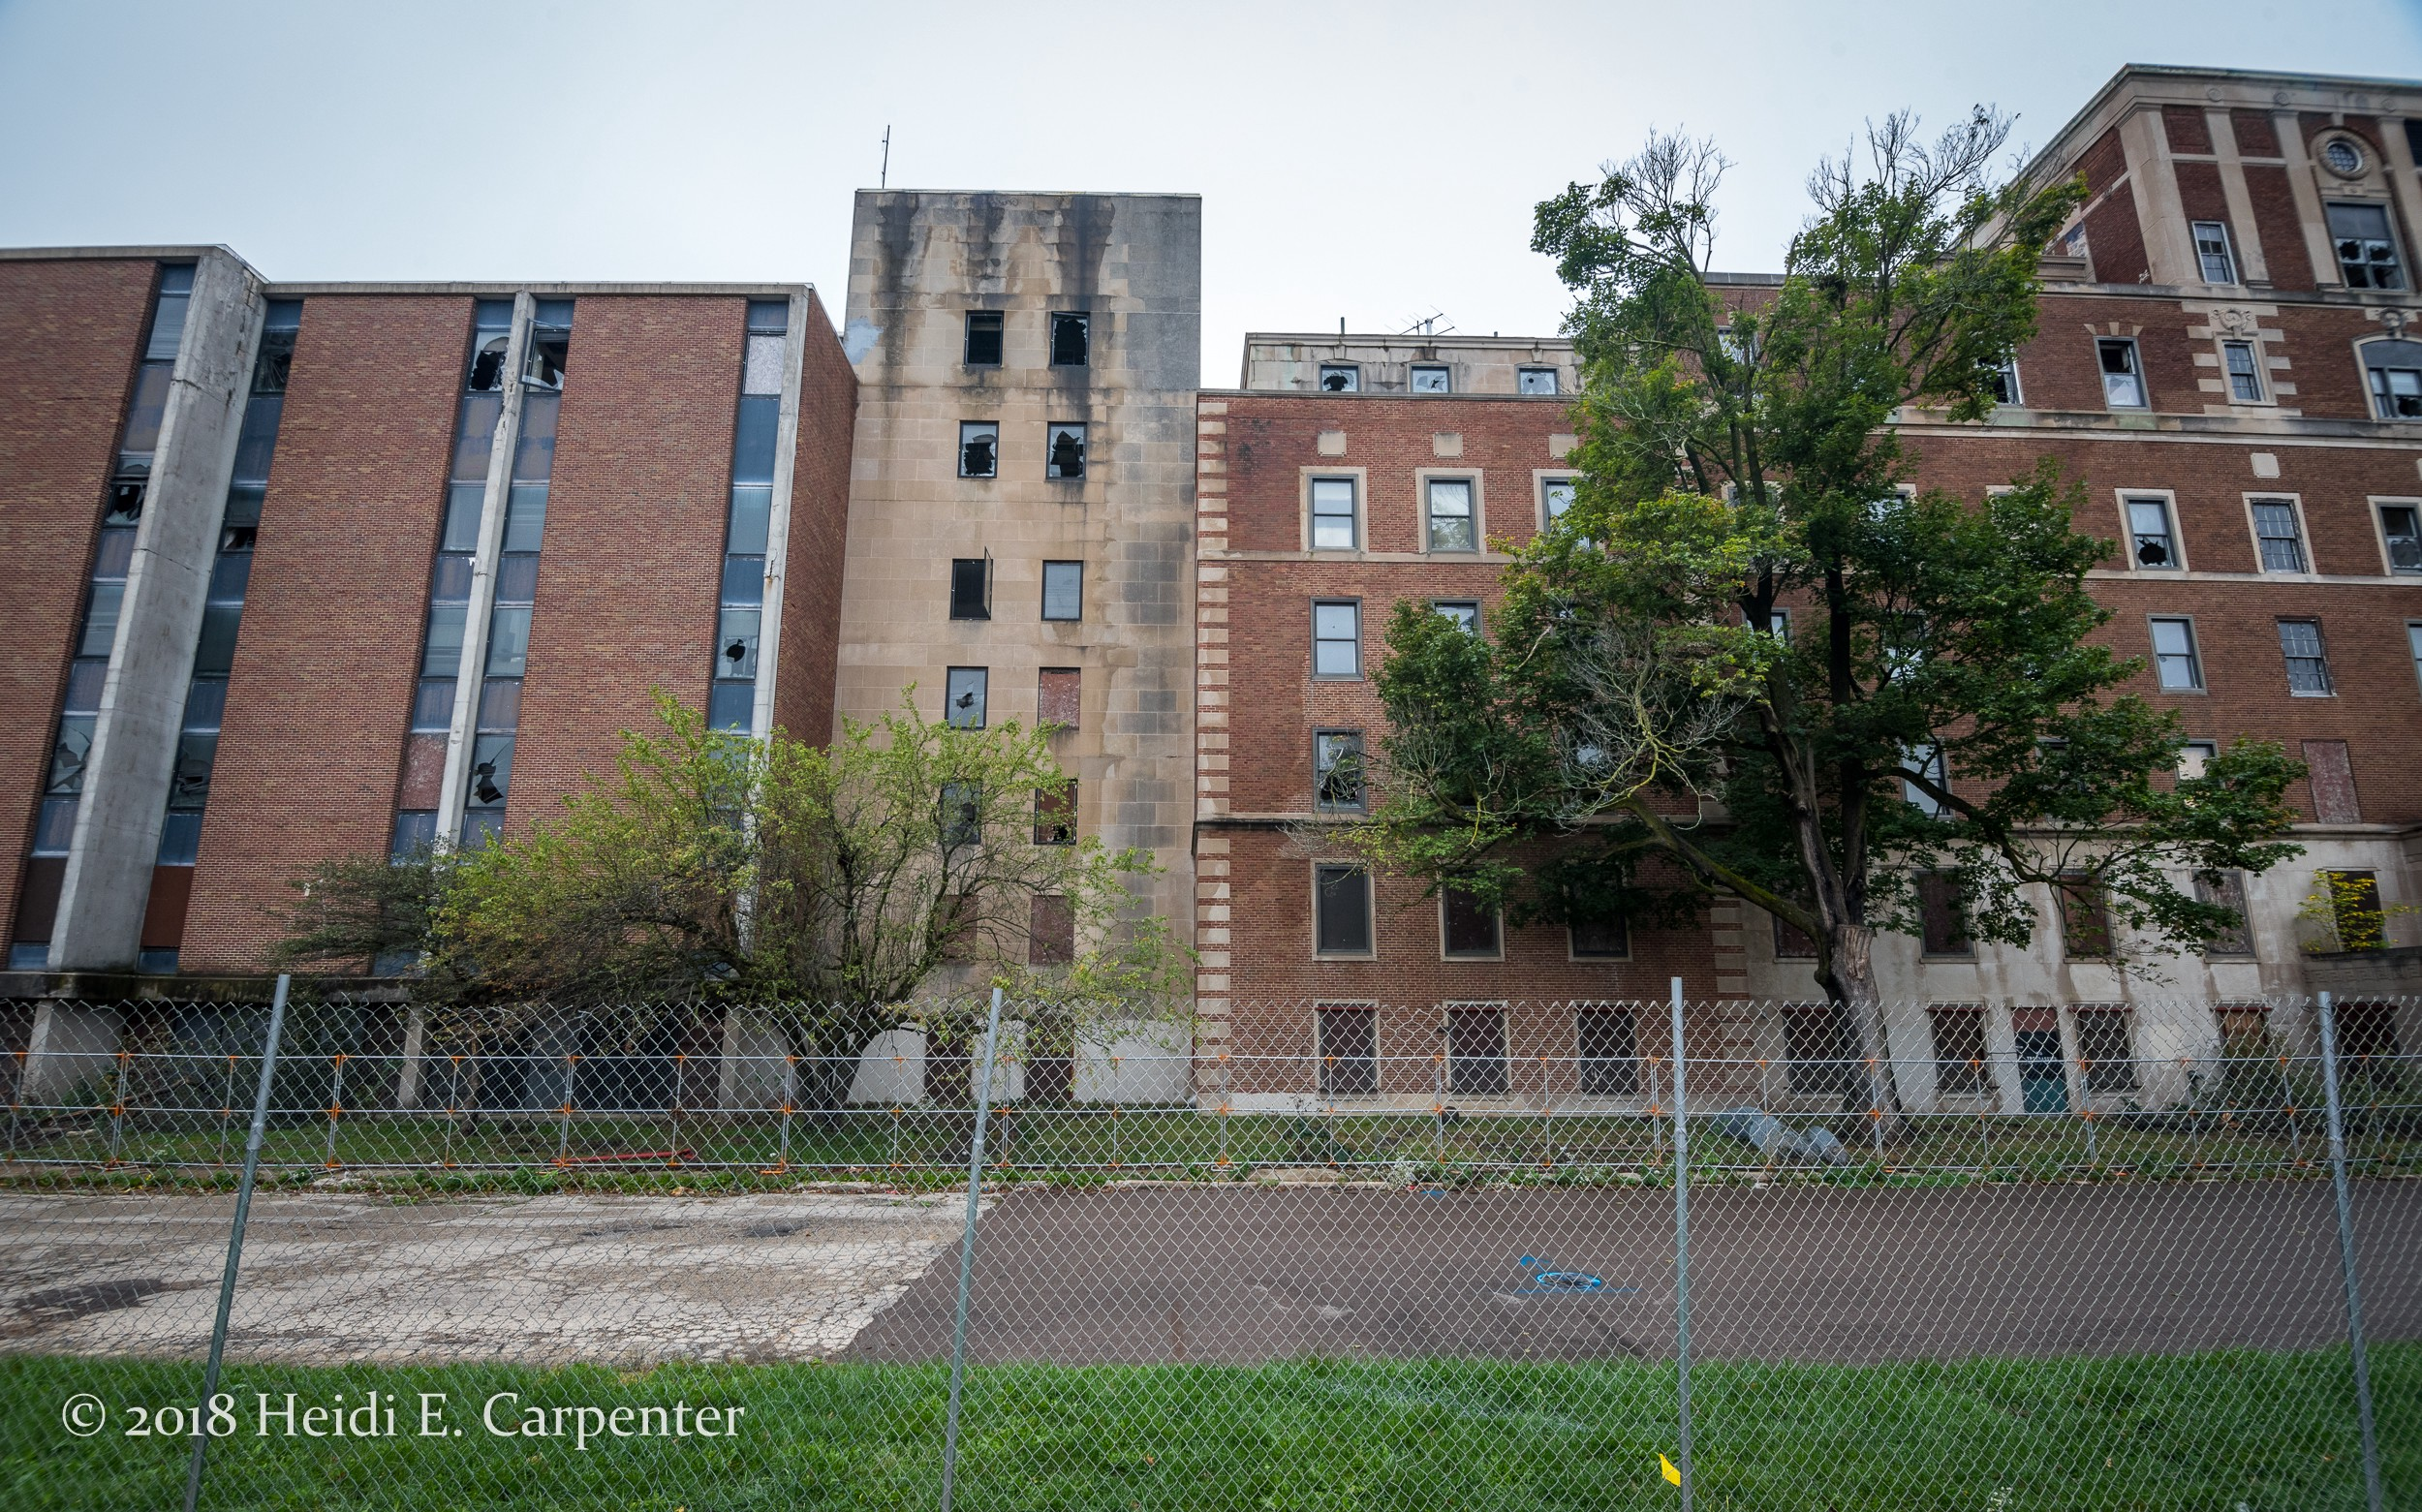 Old Copley Hospital is a juxtaposition of various architectural styles.